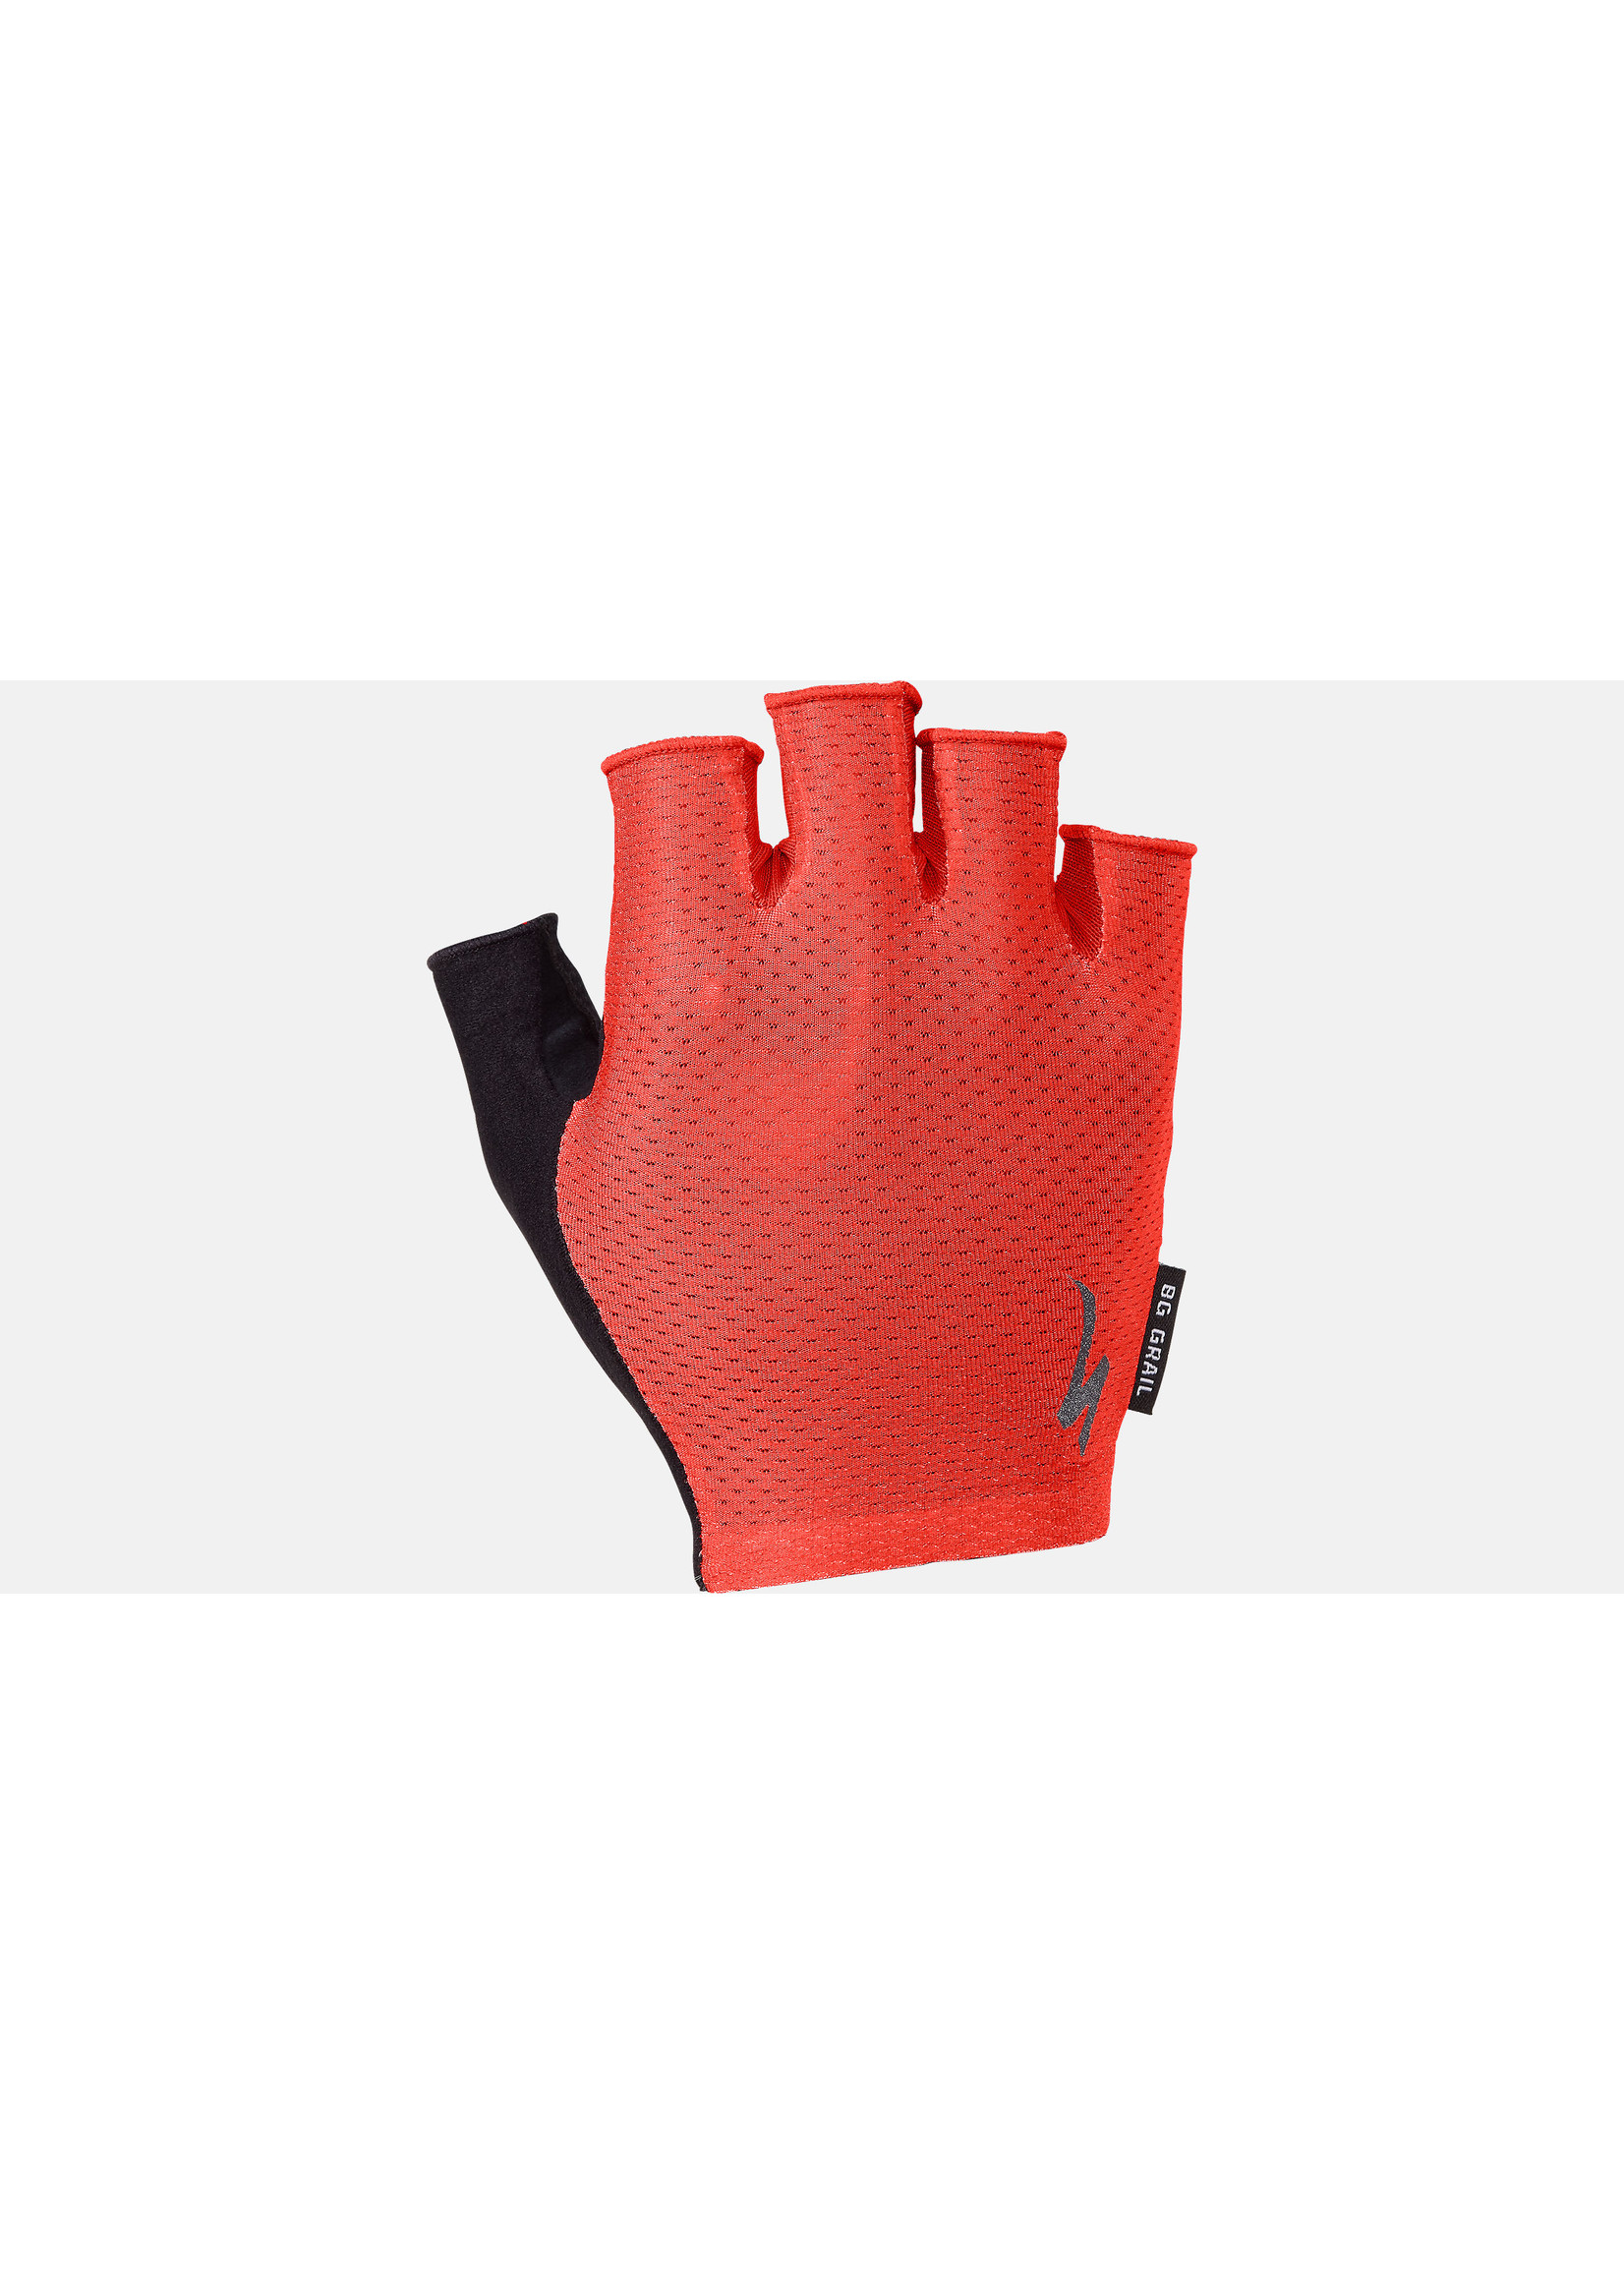 Specialized BG GRAIL GLOVE SF RED Small